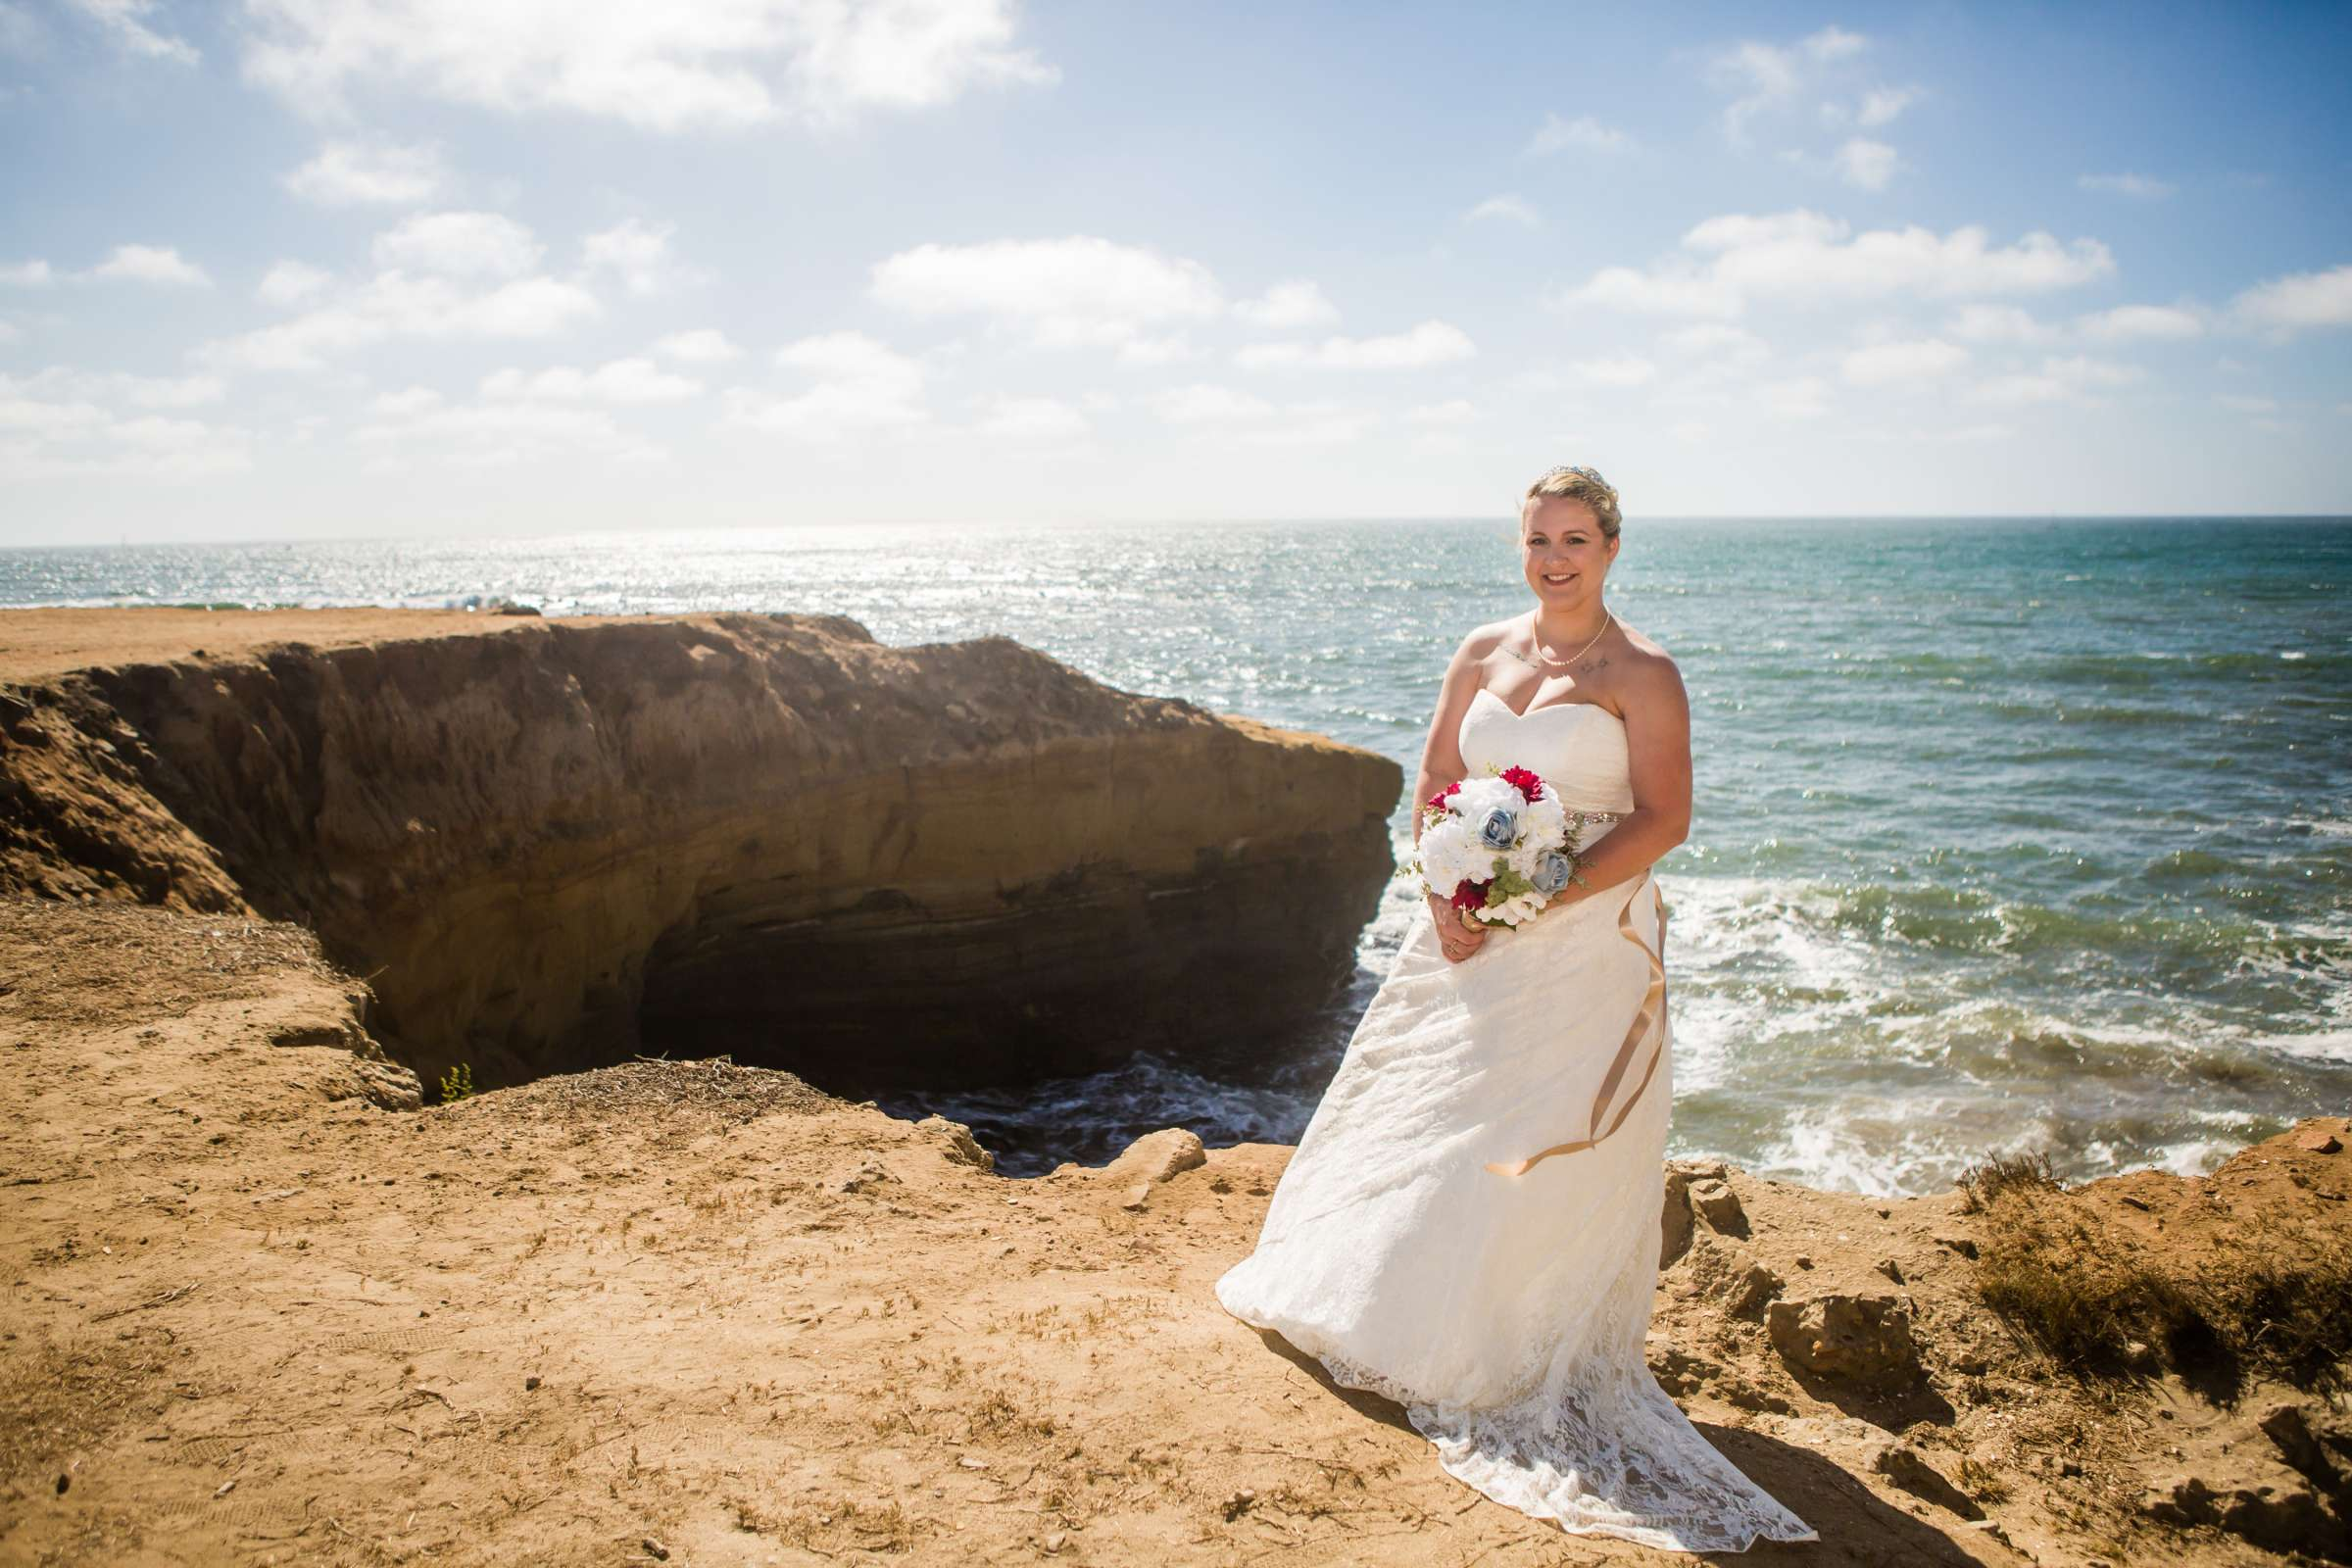 The Inn at Sunset Cliffs Wedding, Melinda and Benjamin Wedding Photo #40 by True Photography